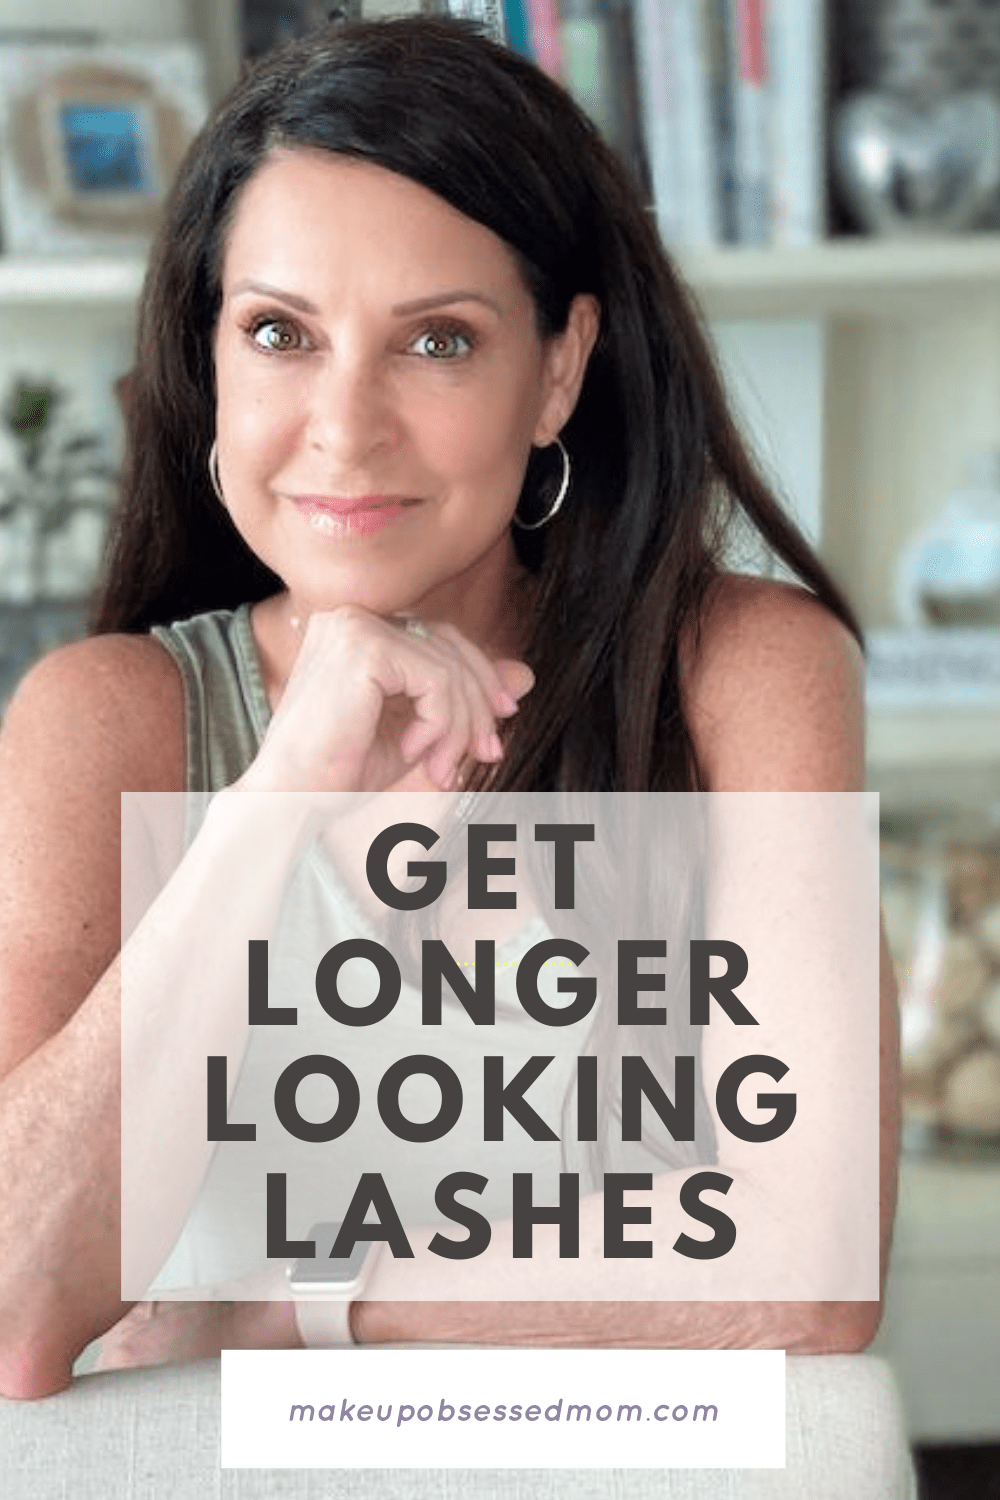 Longer Looking Lashes with LiLash Products